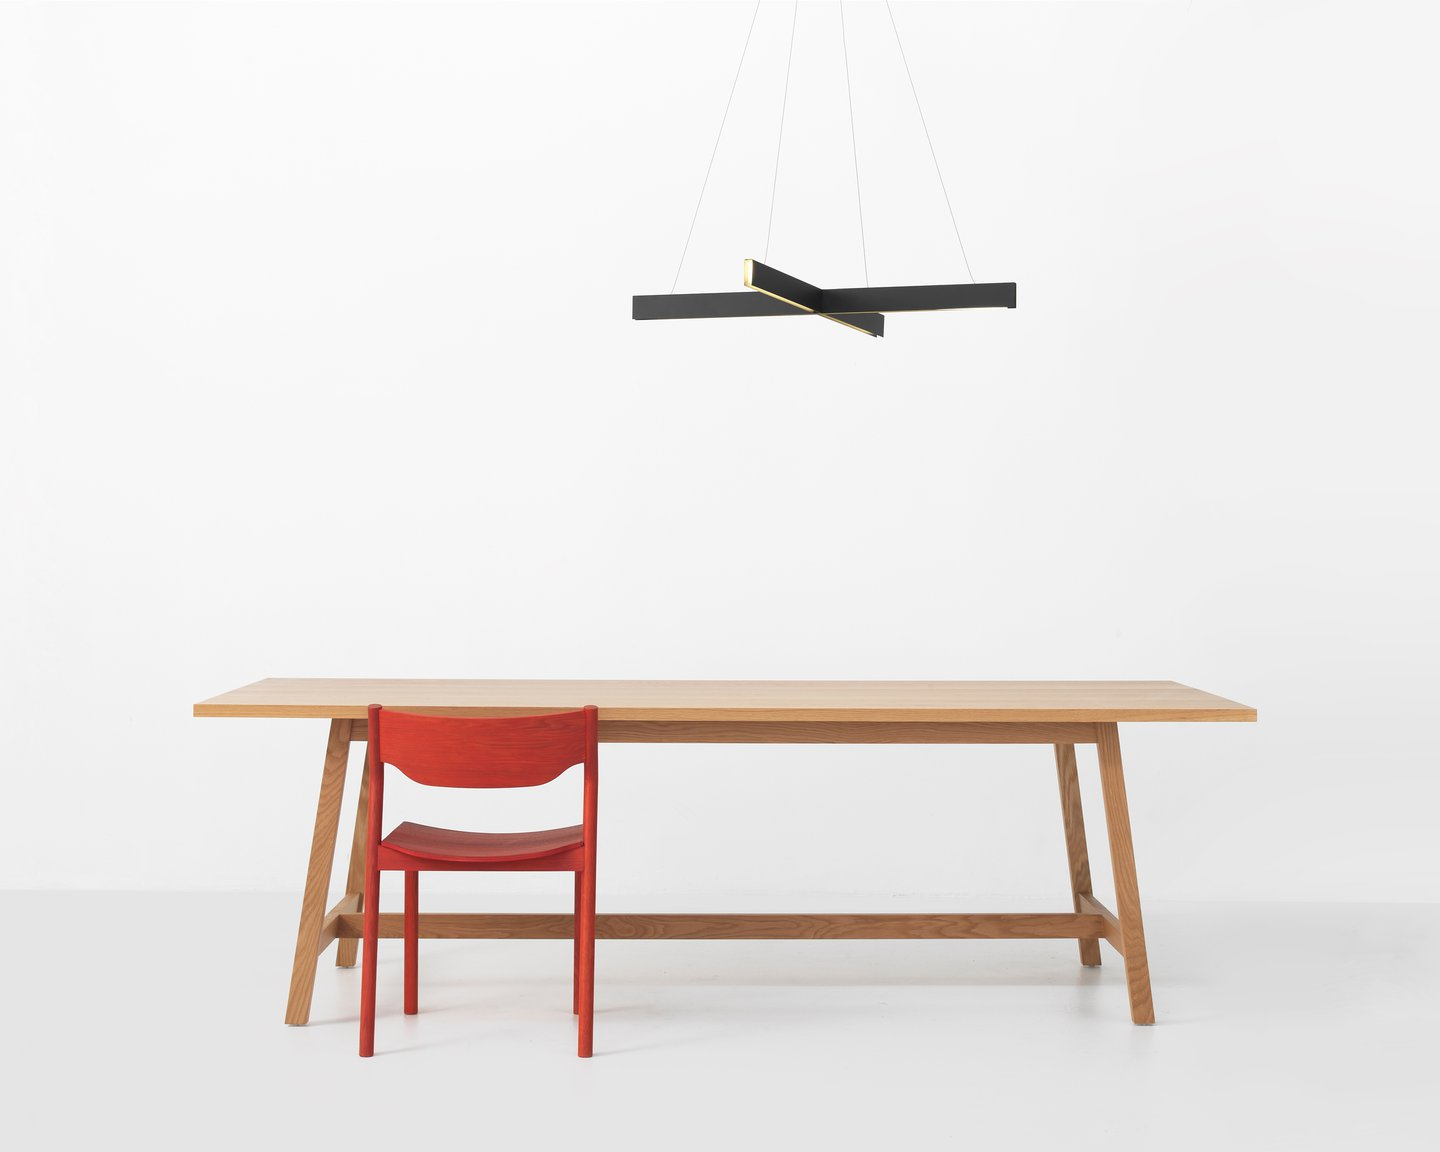 Image: uploads/2017_12/Resident-Cross-pendant---Hawk-table---Tangerine-chair.jpg